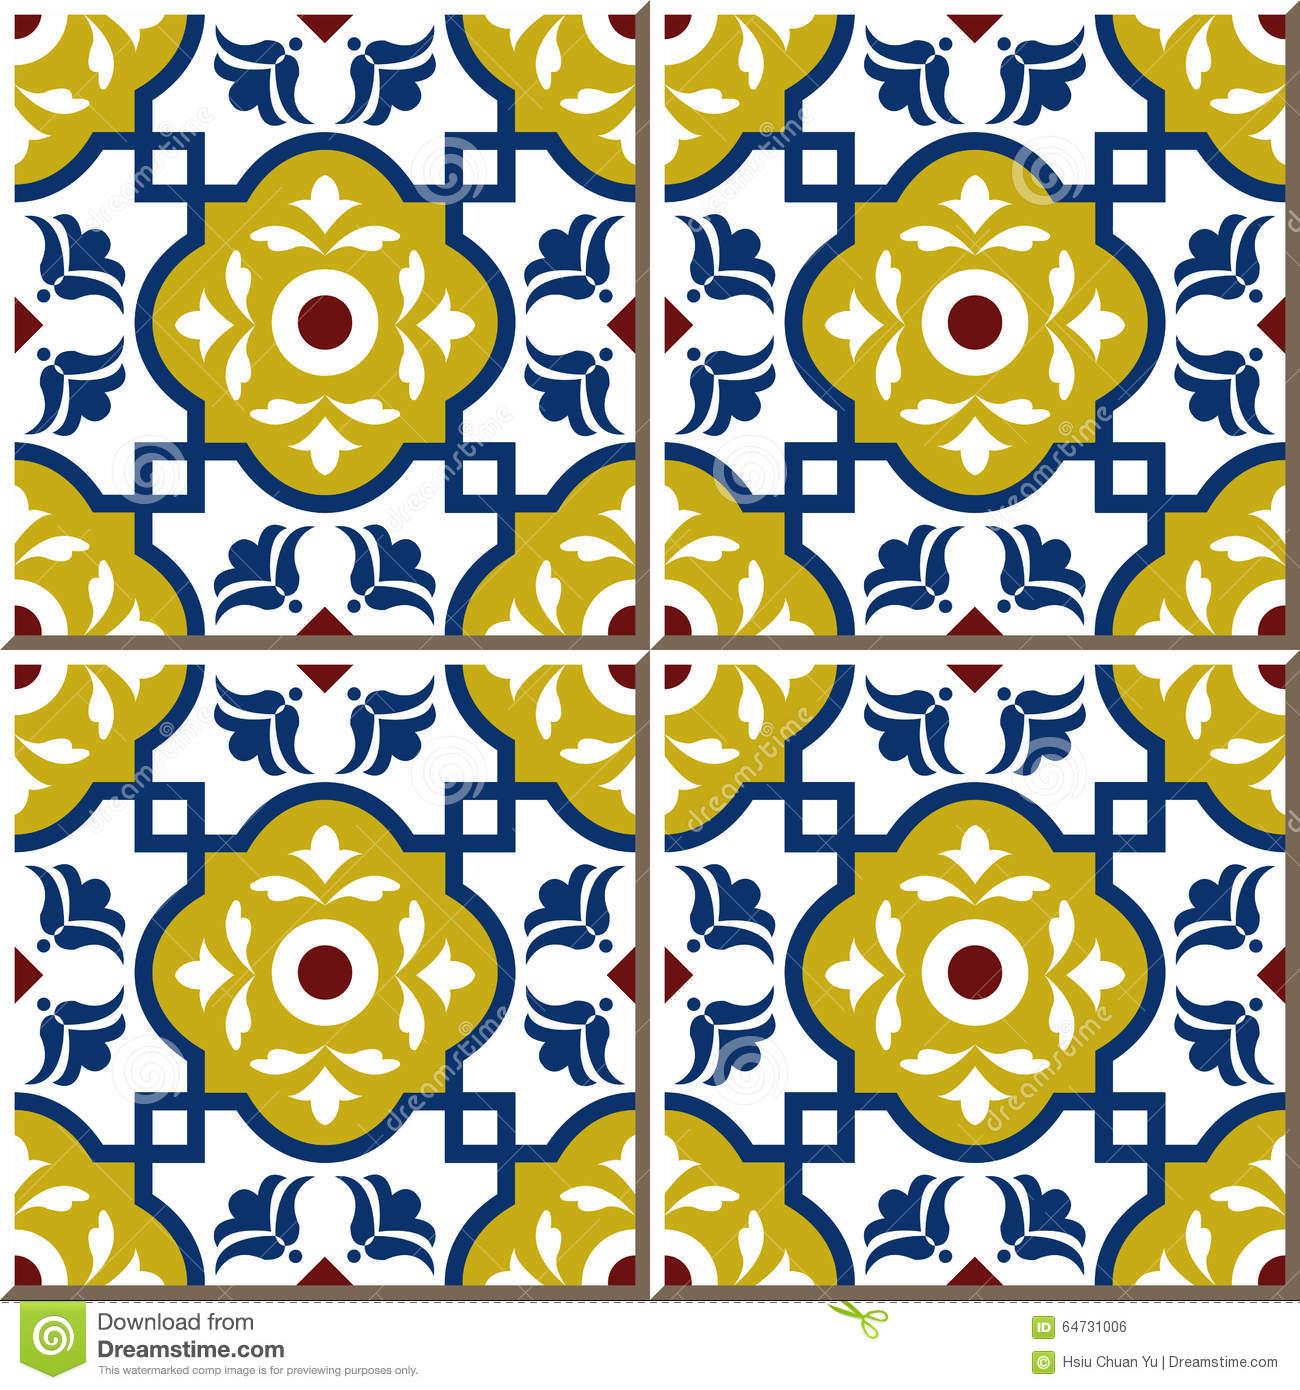 Vintage Seamless Wall Tiles Of Square Cross Flower, Moroccan ...